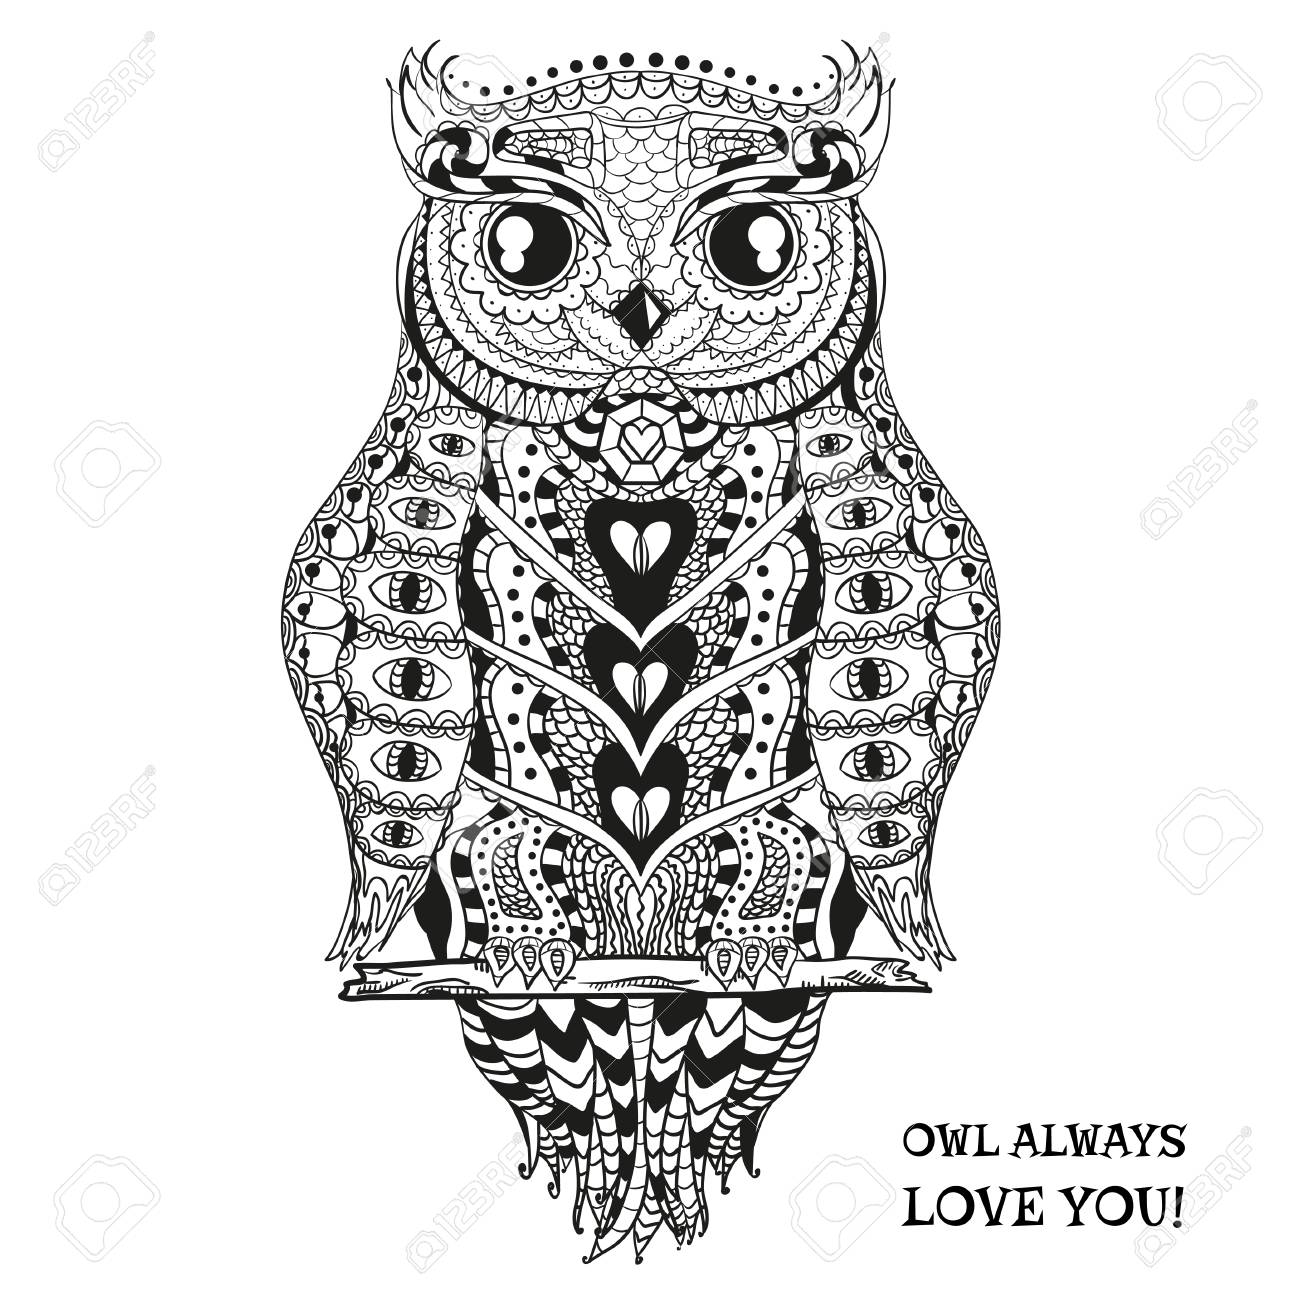 Owl Design Zentangle Hand Drawn Owl With Abstract Patterns